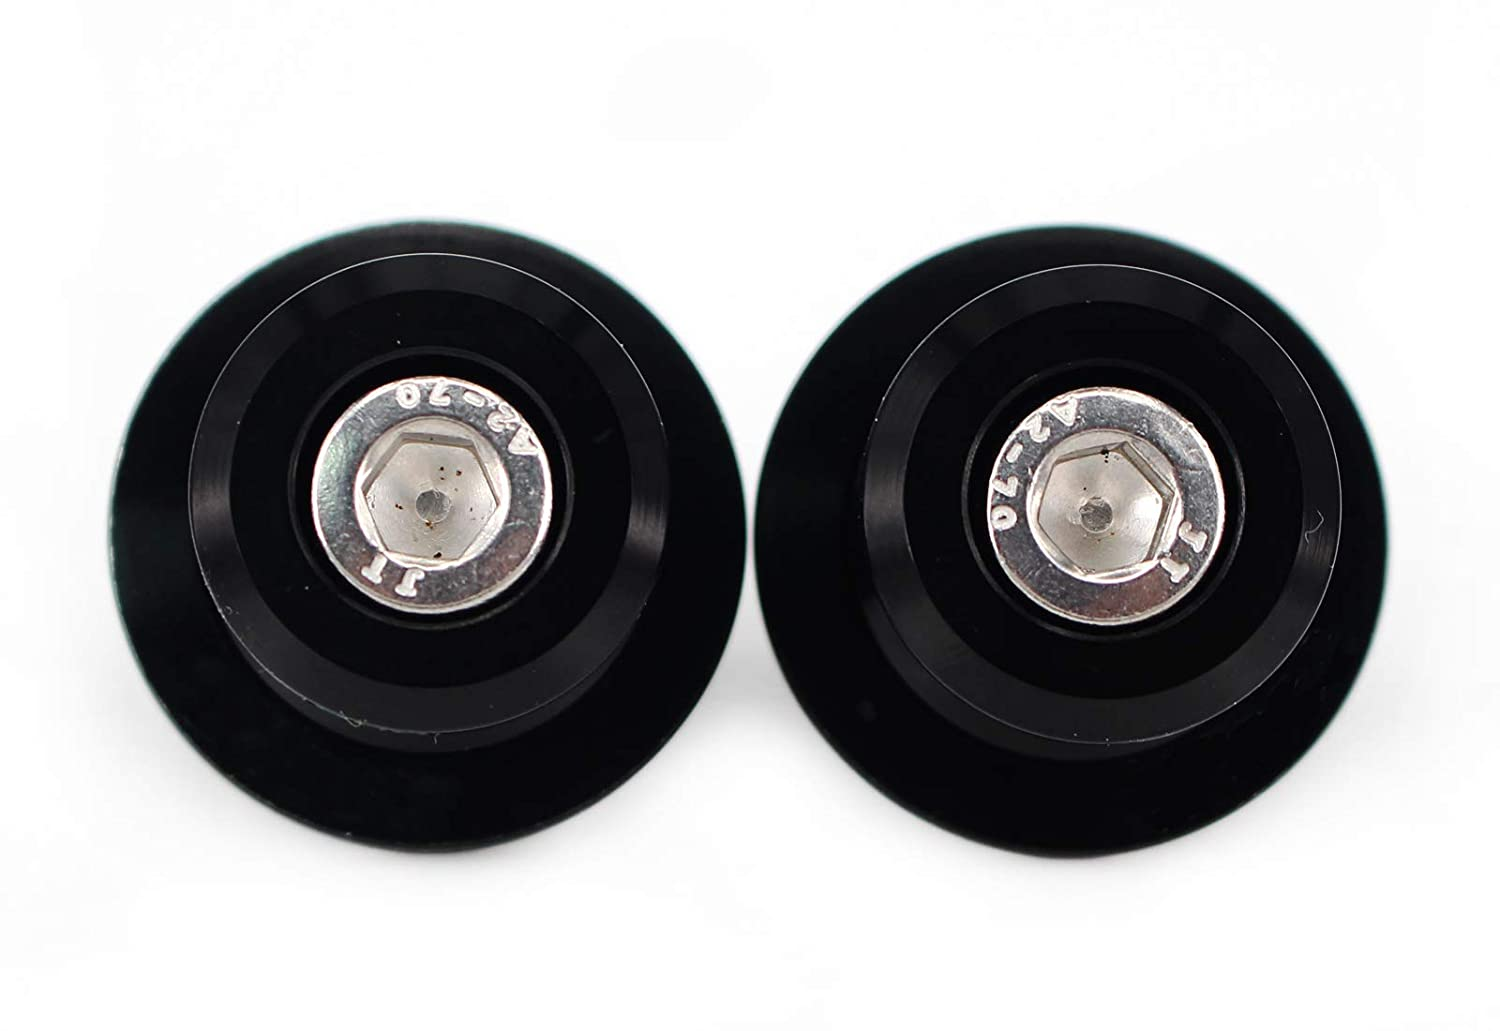 6mm Swingarm Spools Sliders For Yamaha MT-09 FZ-09 FJ-09 XSR900 MT-10 FZ-10 MT-01 MT-03 YZF-R3 R25 R6 R1